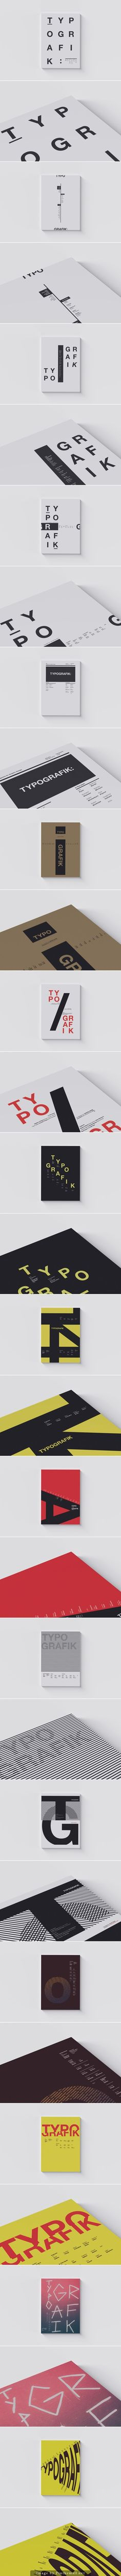 Typografik cover designs